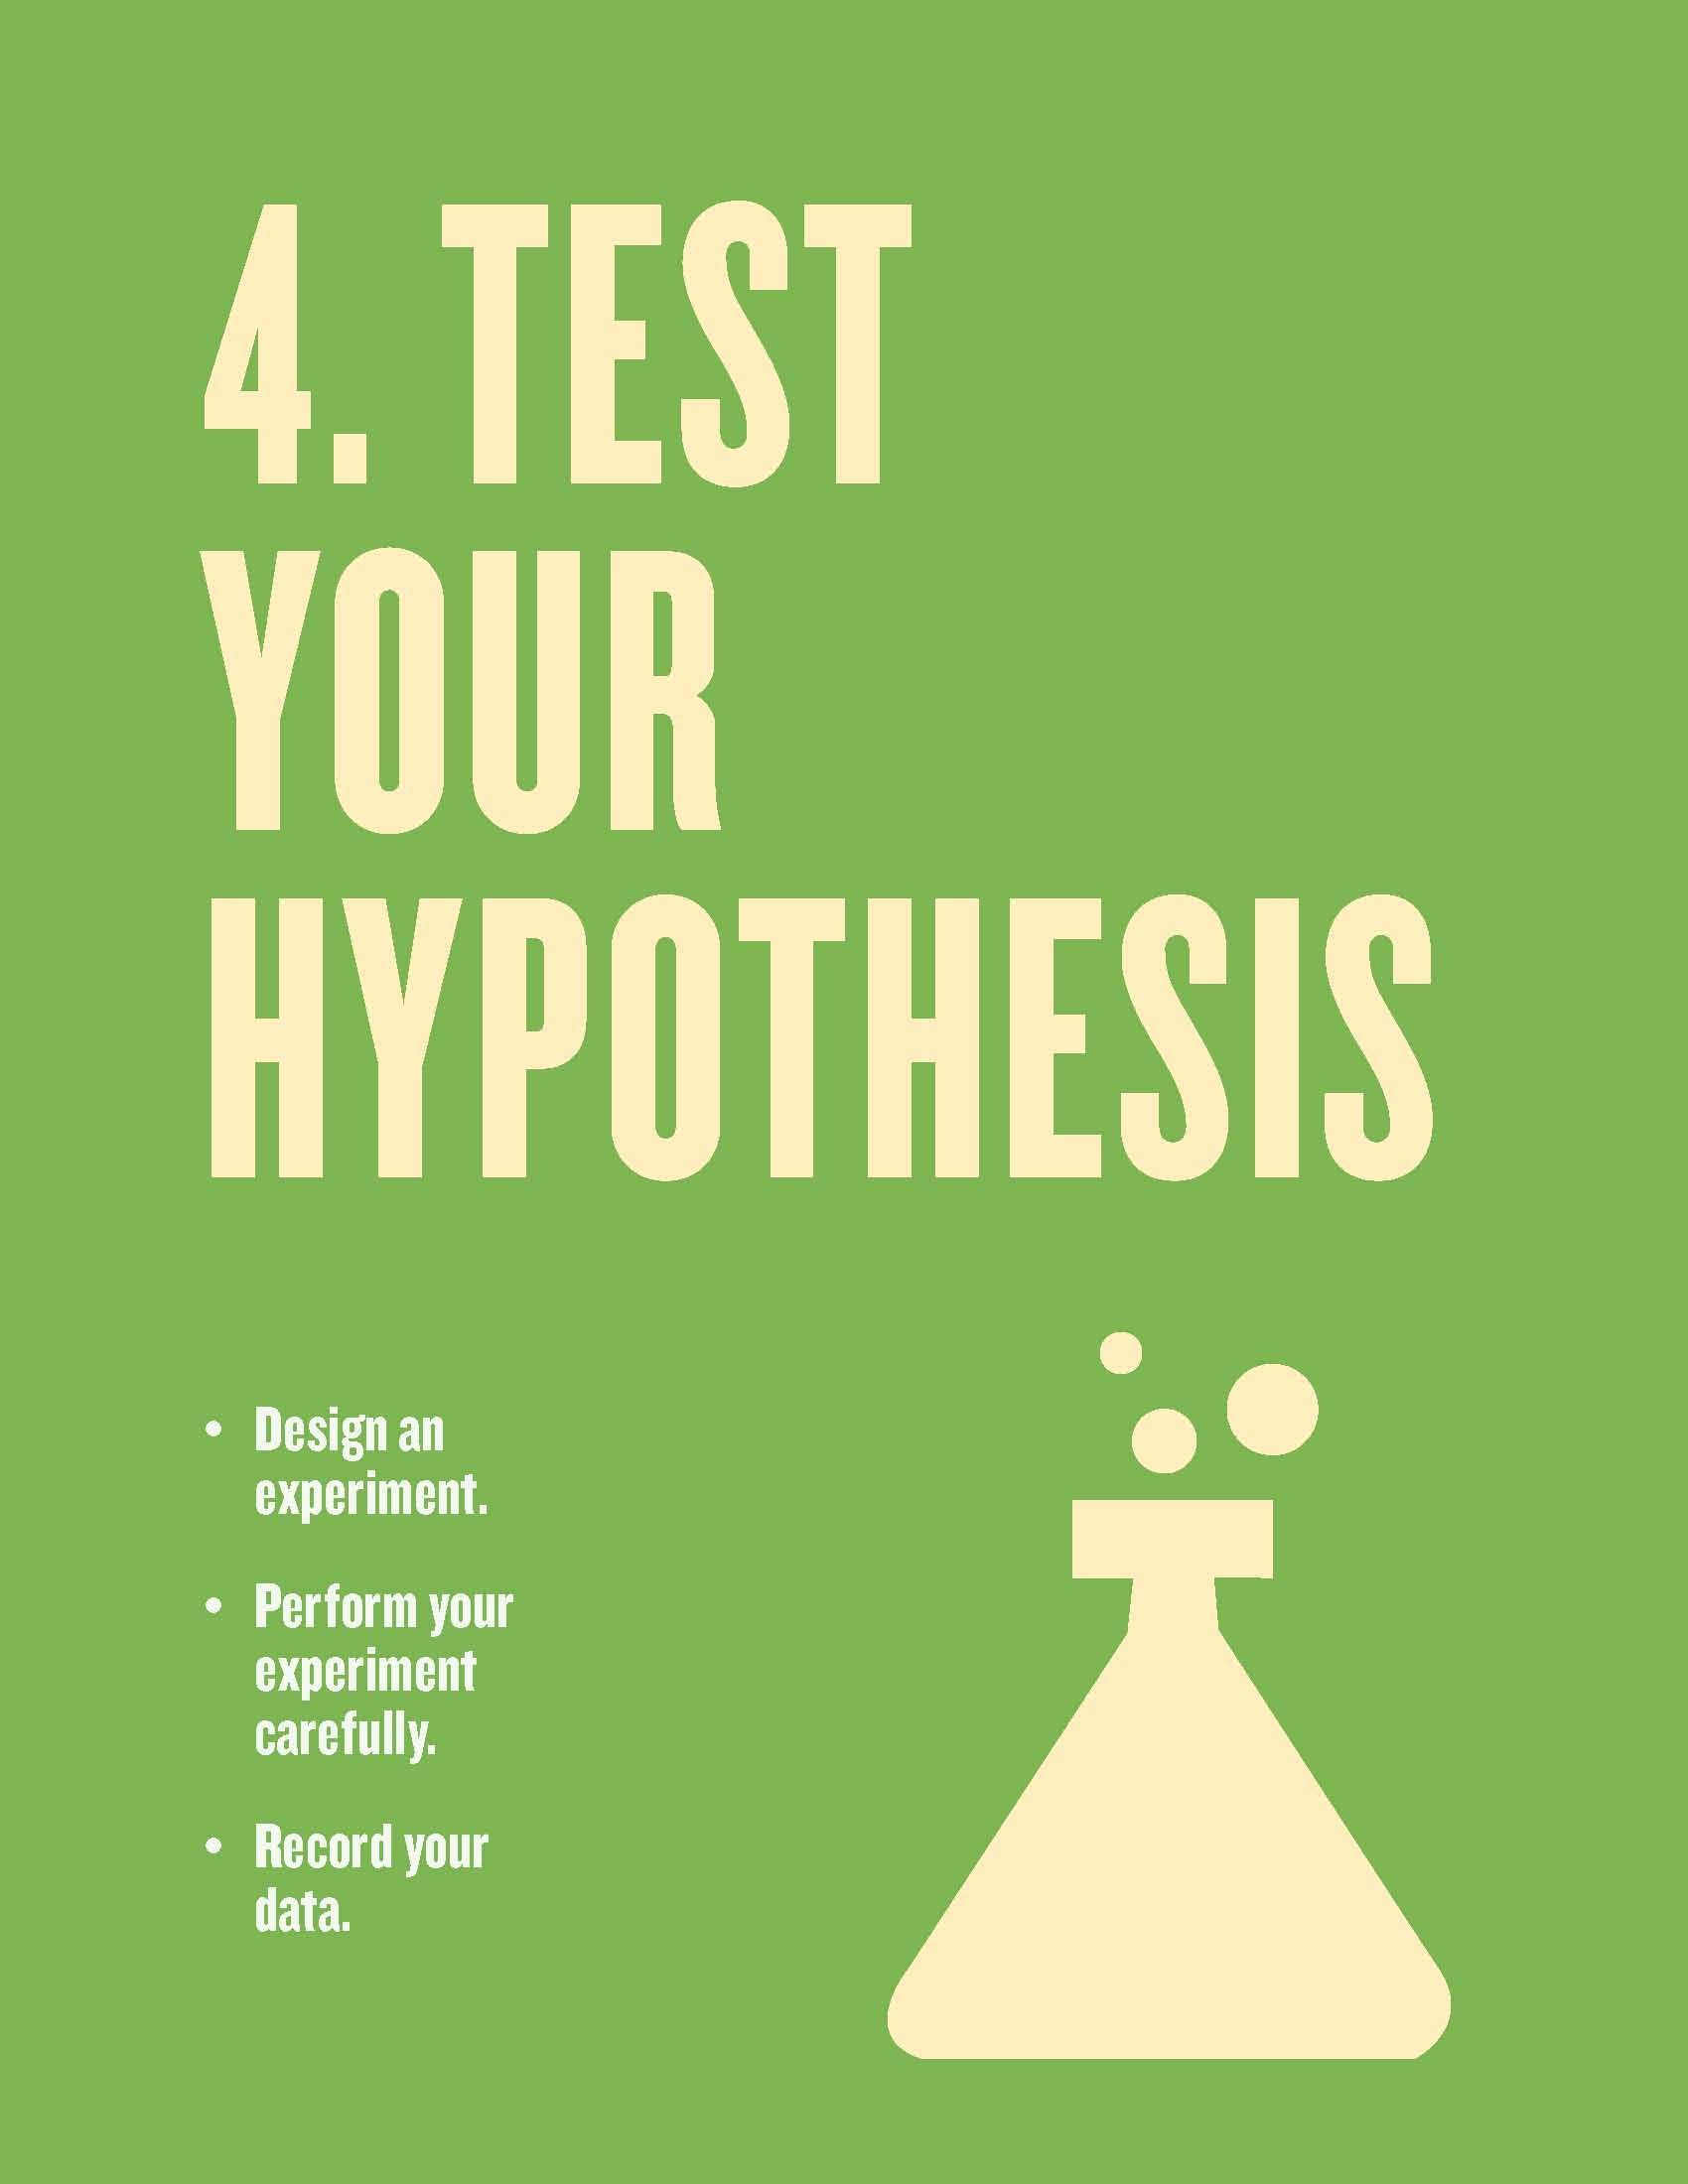 Free Scientific Method Posters For The Classroom Step 4 Test Your Hypothesis From Scholastic